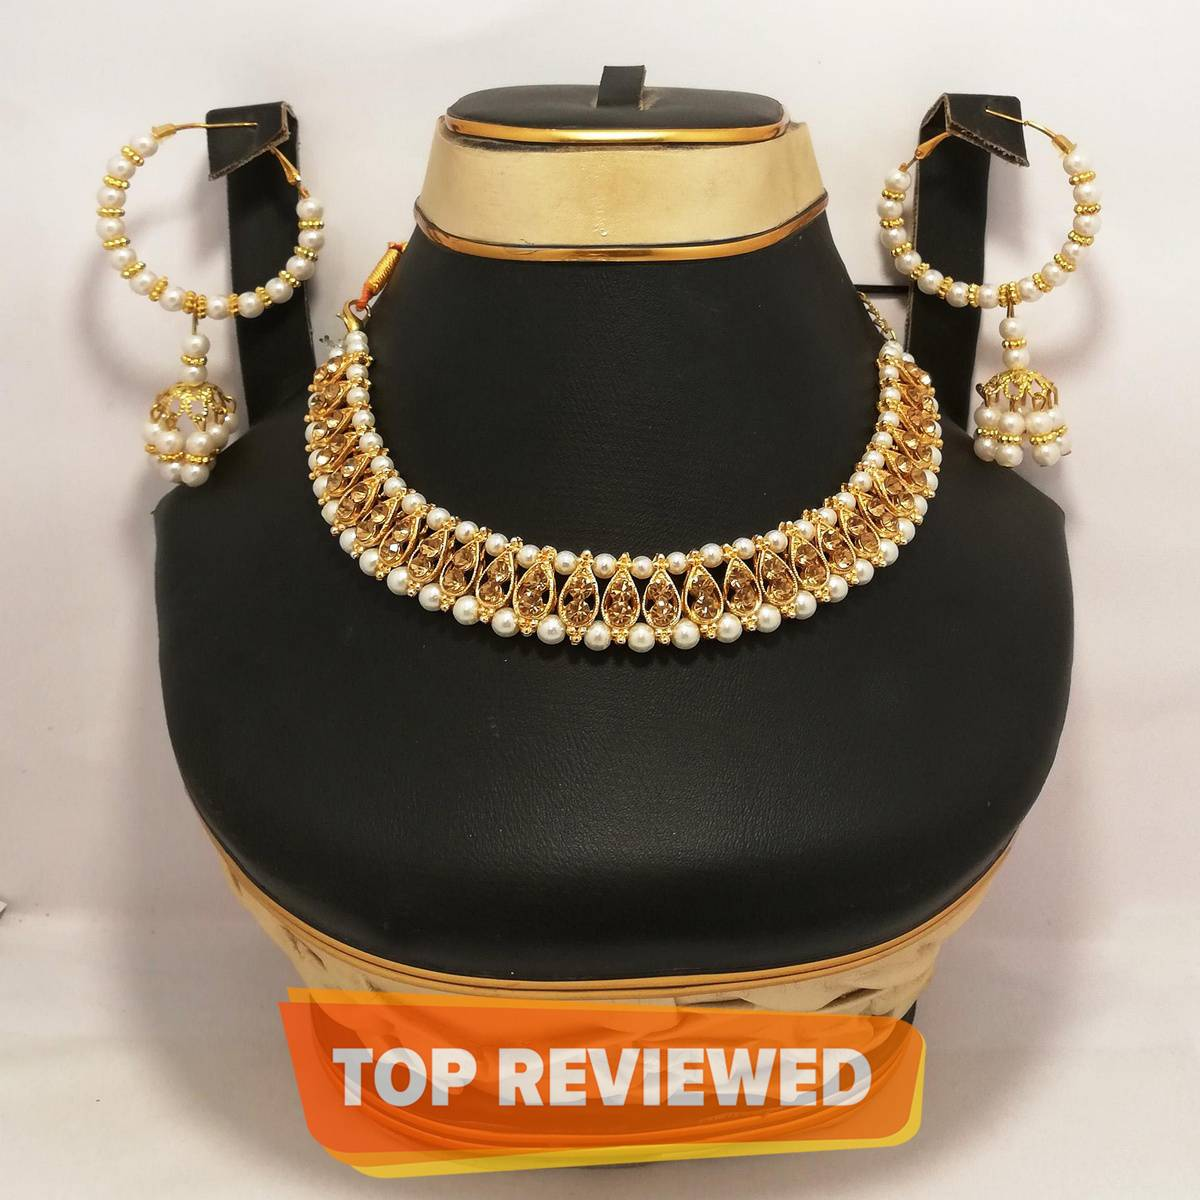 Stylish Pearl Necklace With Earrings-Fancy Jewellry Box Free-Beautiful Gift Pack